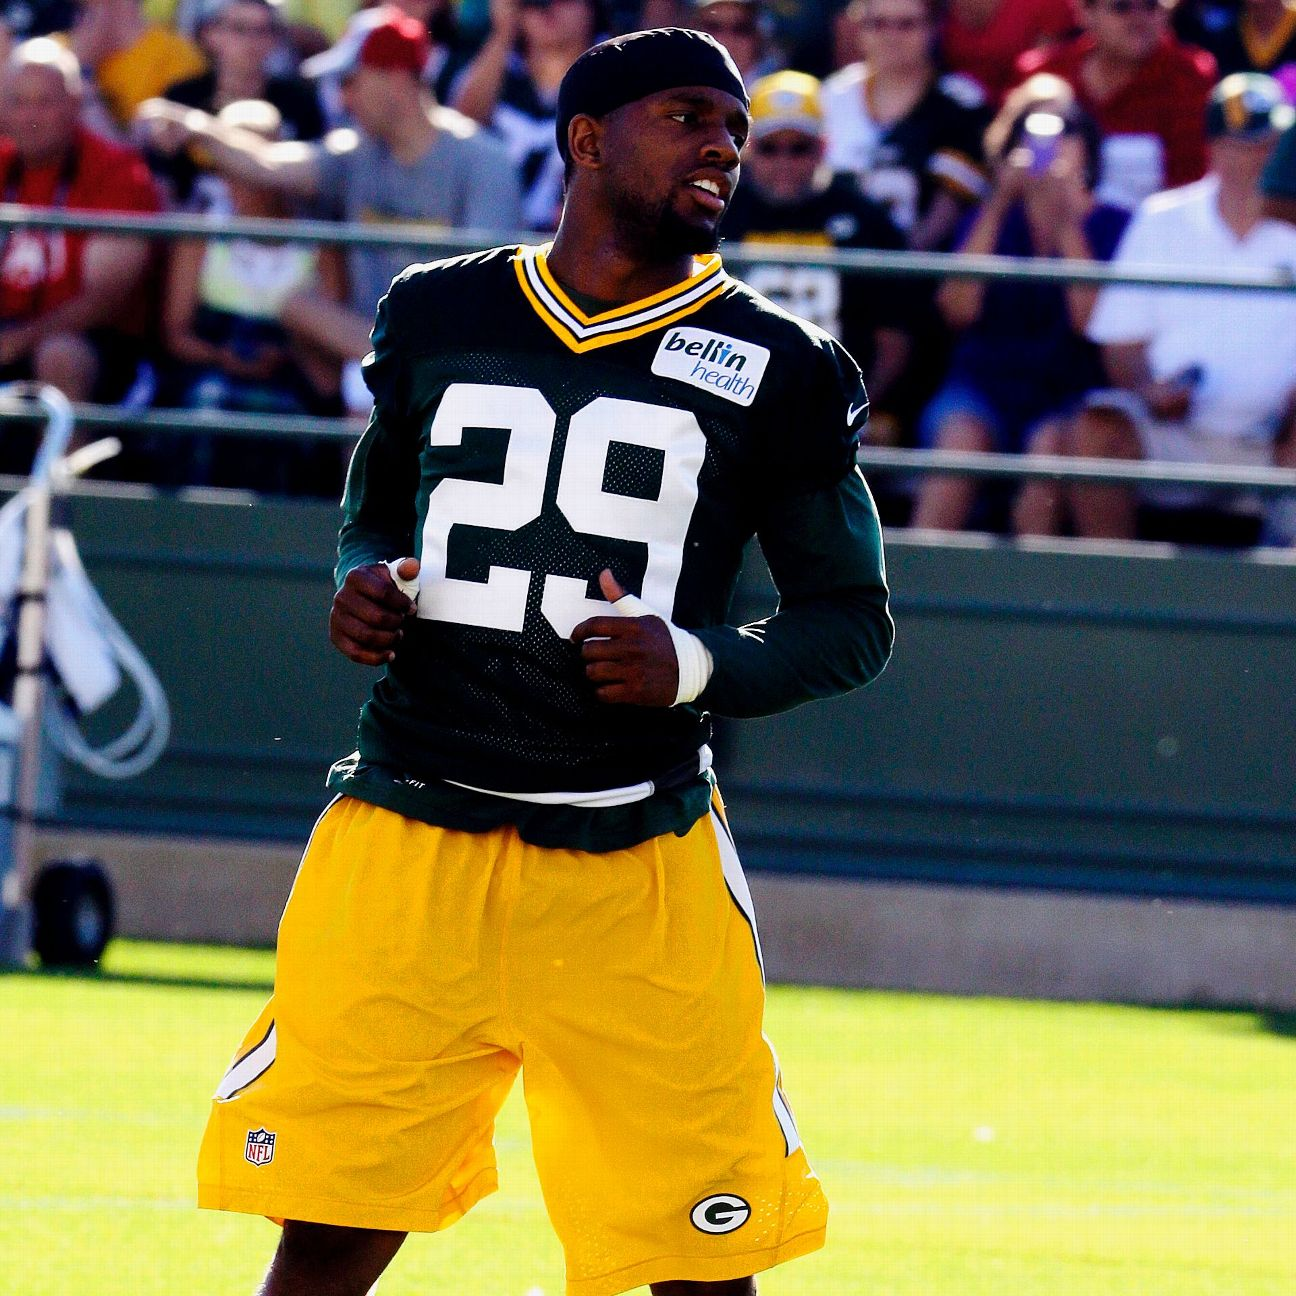 Packers CB Casey Hayward looks recovered from foot surgery